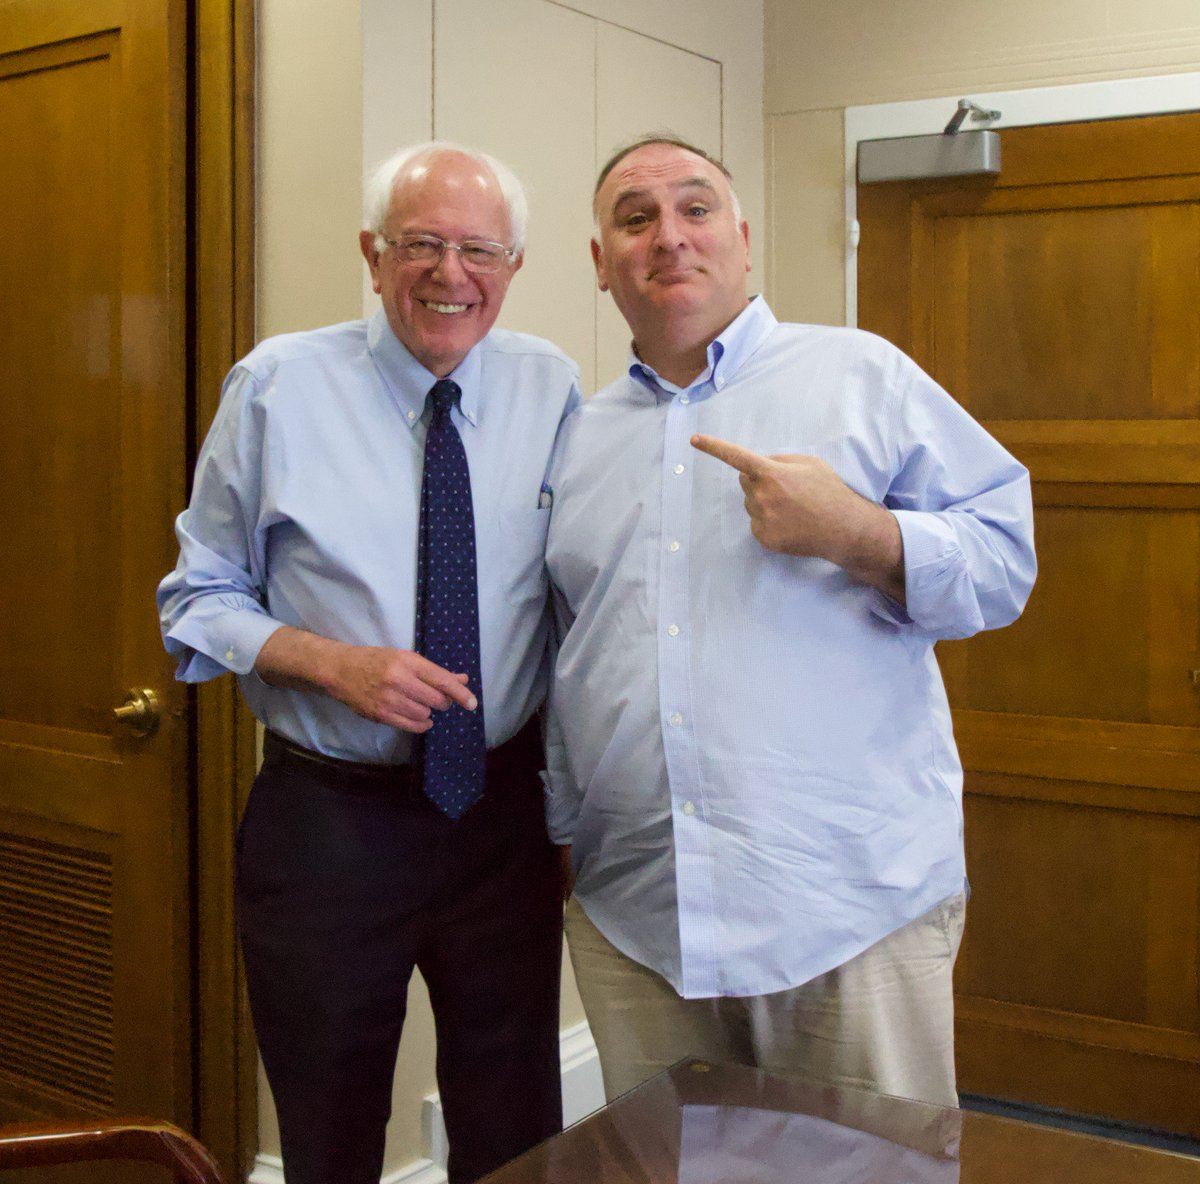 test Twitter Media - Thank you @chefjoseandres for stopping by to talk about the amazing work you did in Puerto Rico after Hurricane Maria! The full resources of the United States must be used to ensure that Puerto Rico gets the food, water, housing, and electricity they still desperately need. https://t.co/wMlS7emRDA